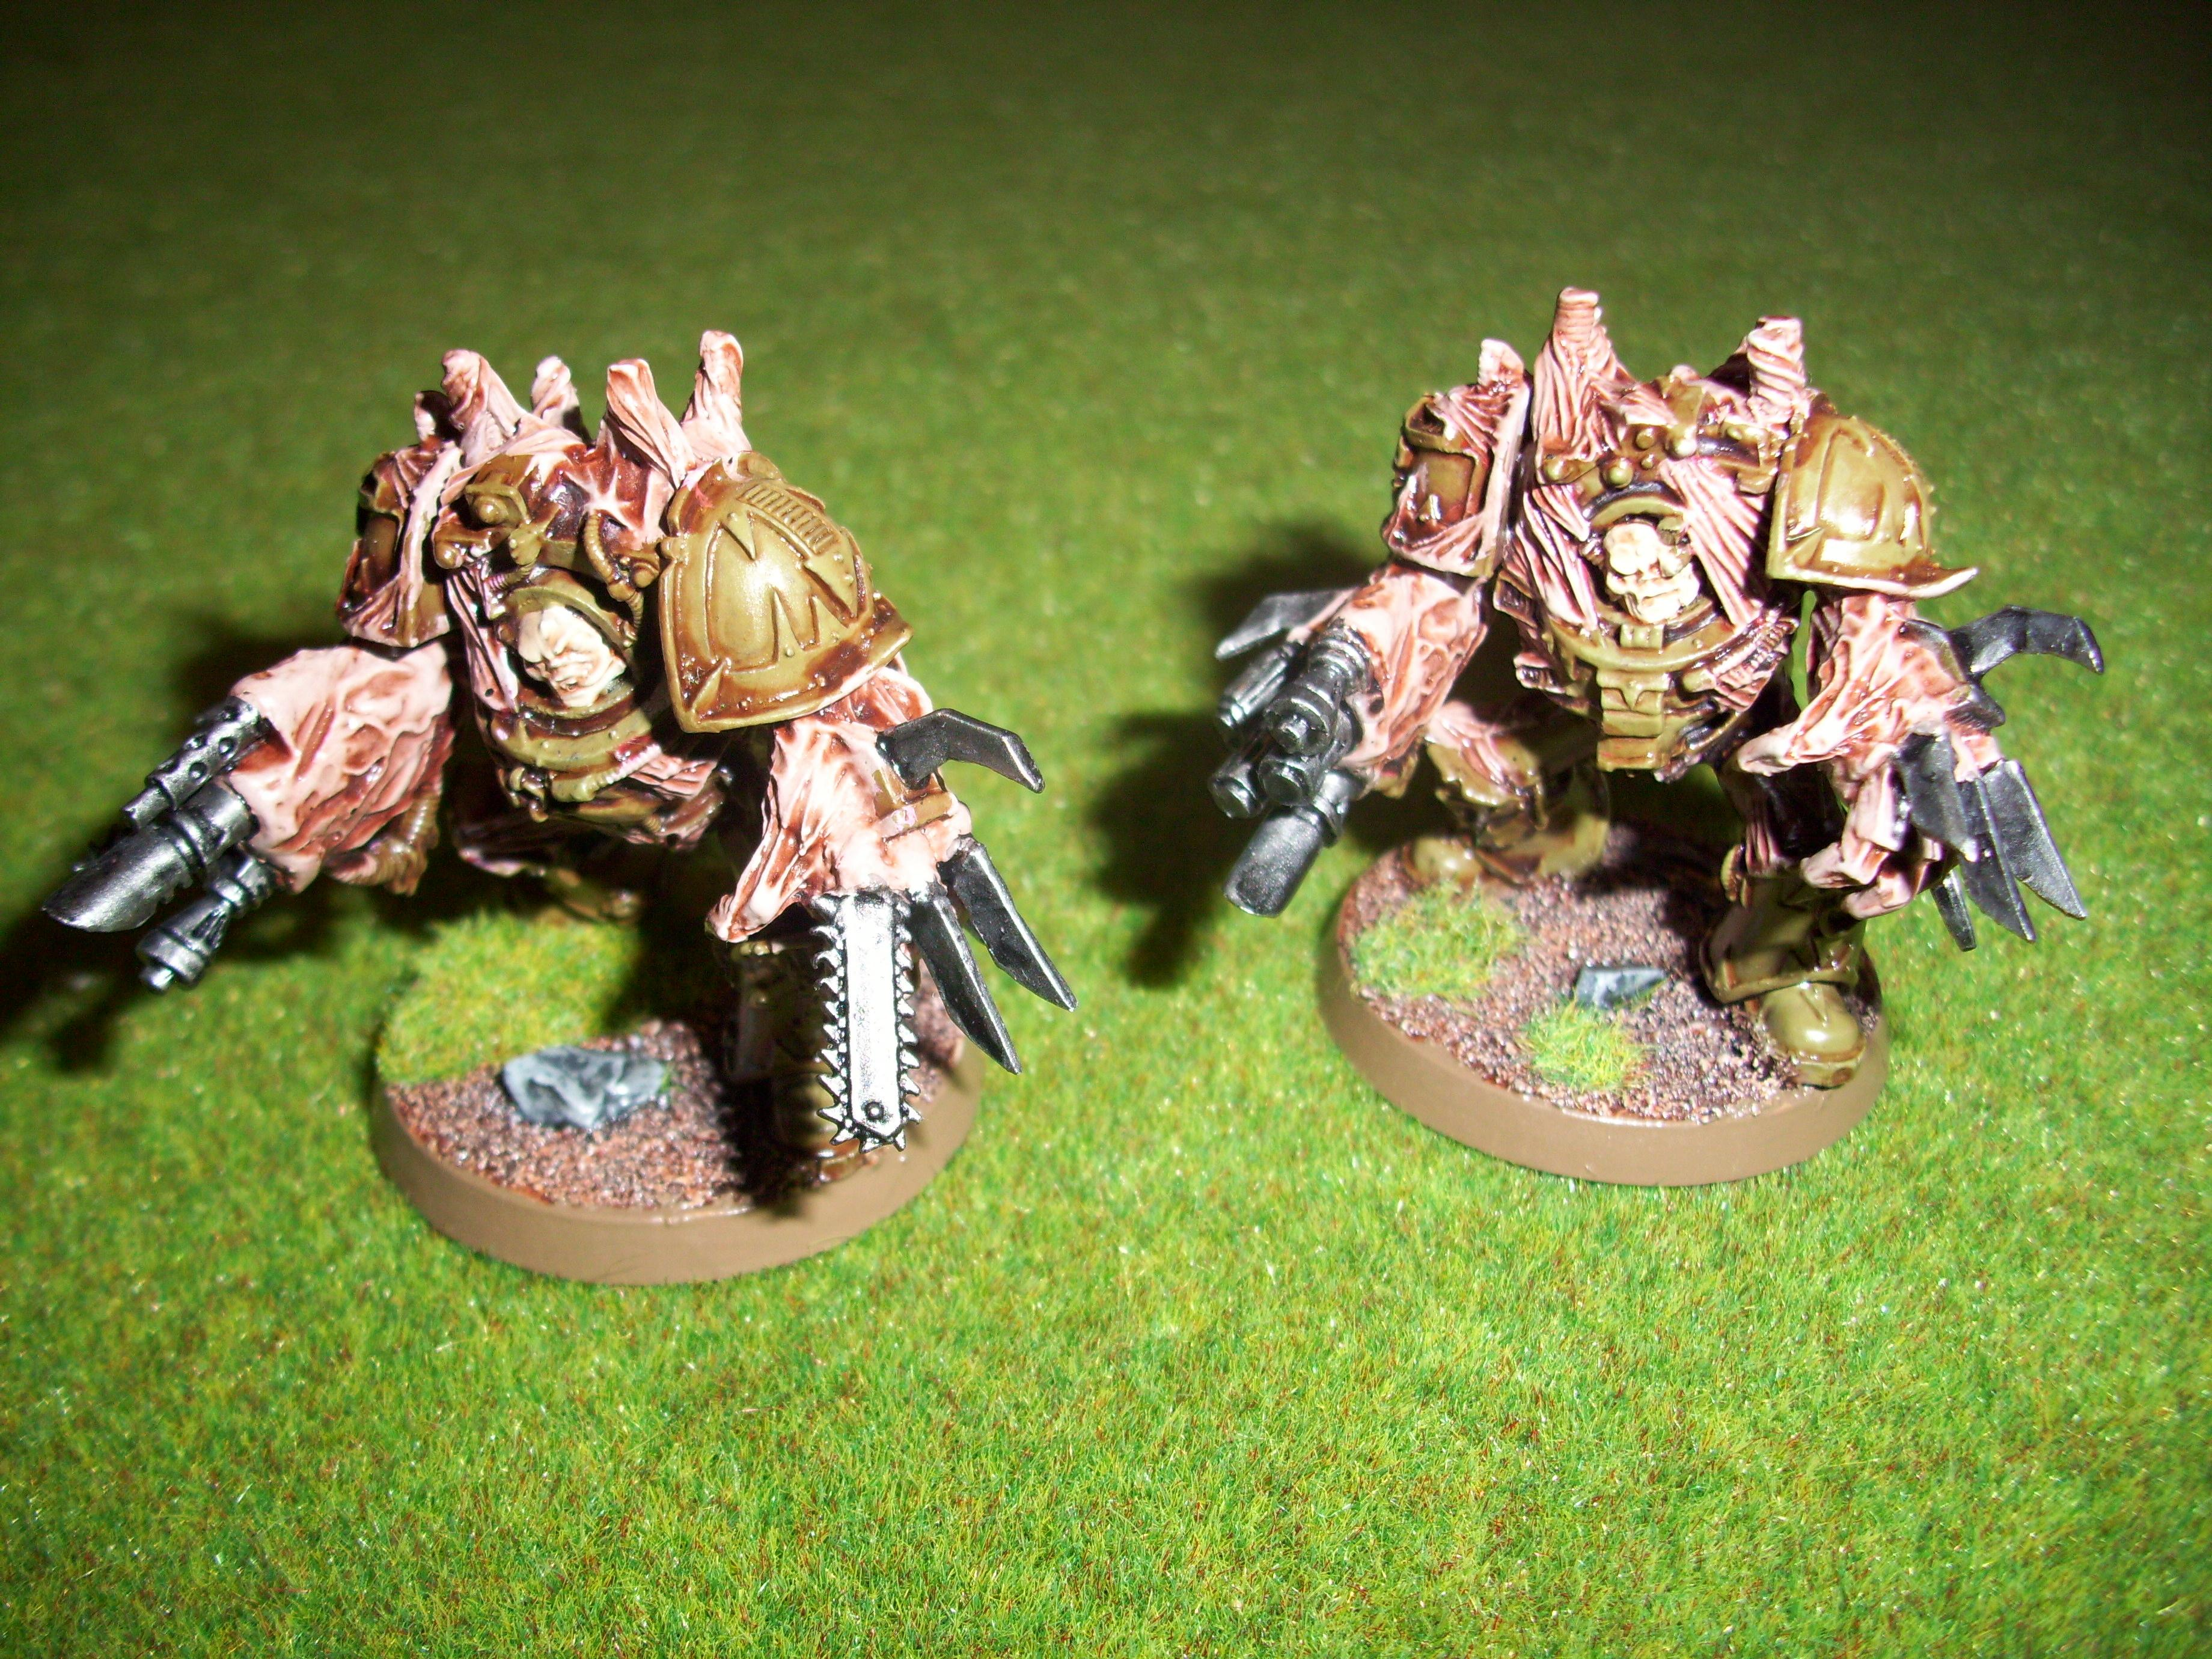 28mm, Chaos, Chaos Space Marines, Games Workshop, Nurgle, Obliterators, Science-fiction, Warhammer 40,000